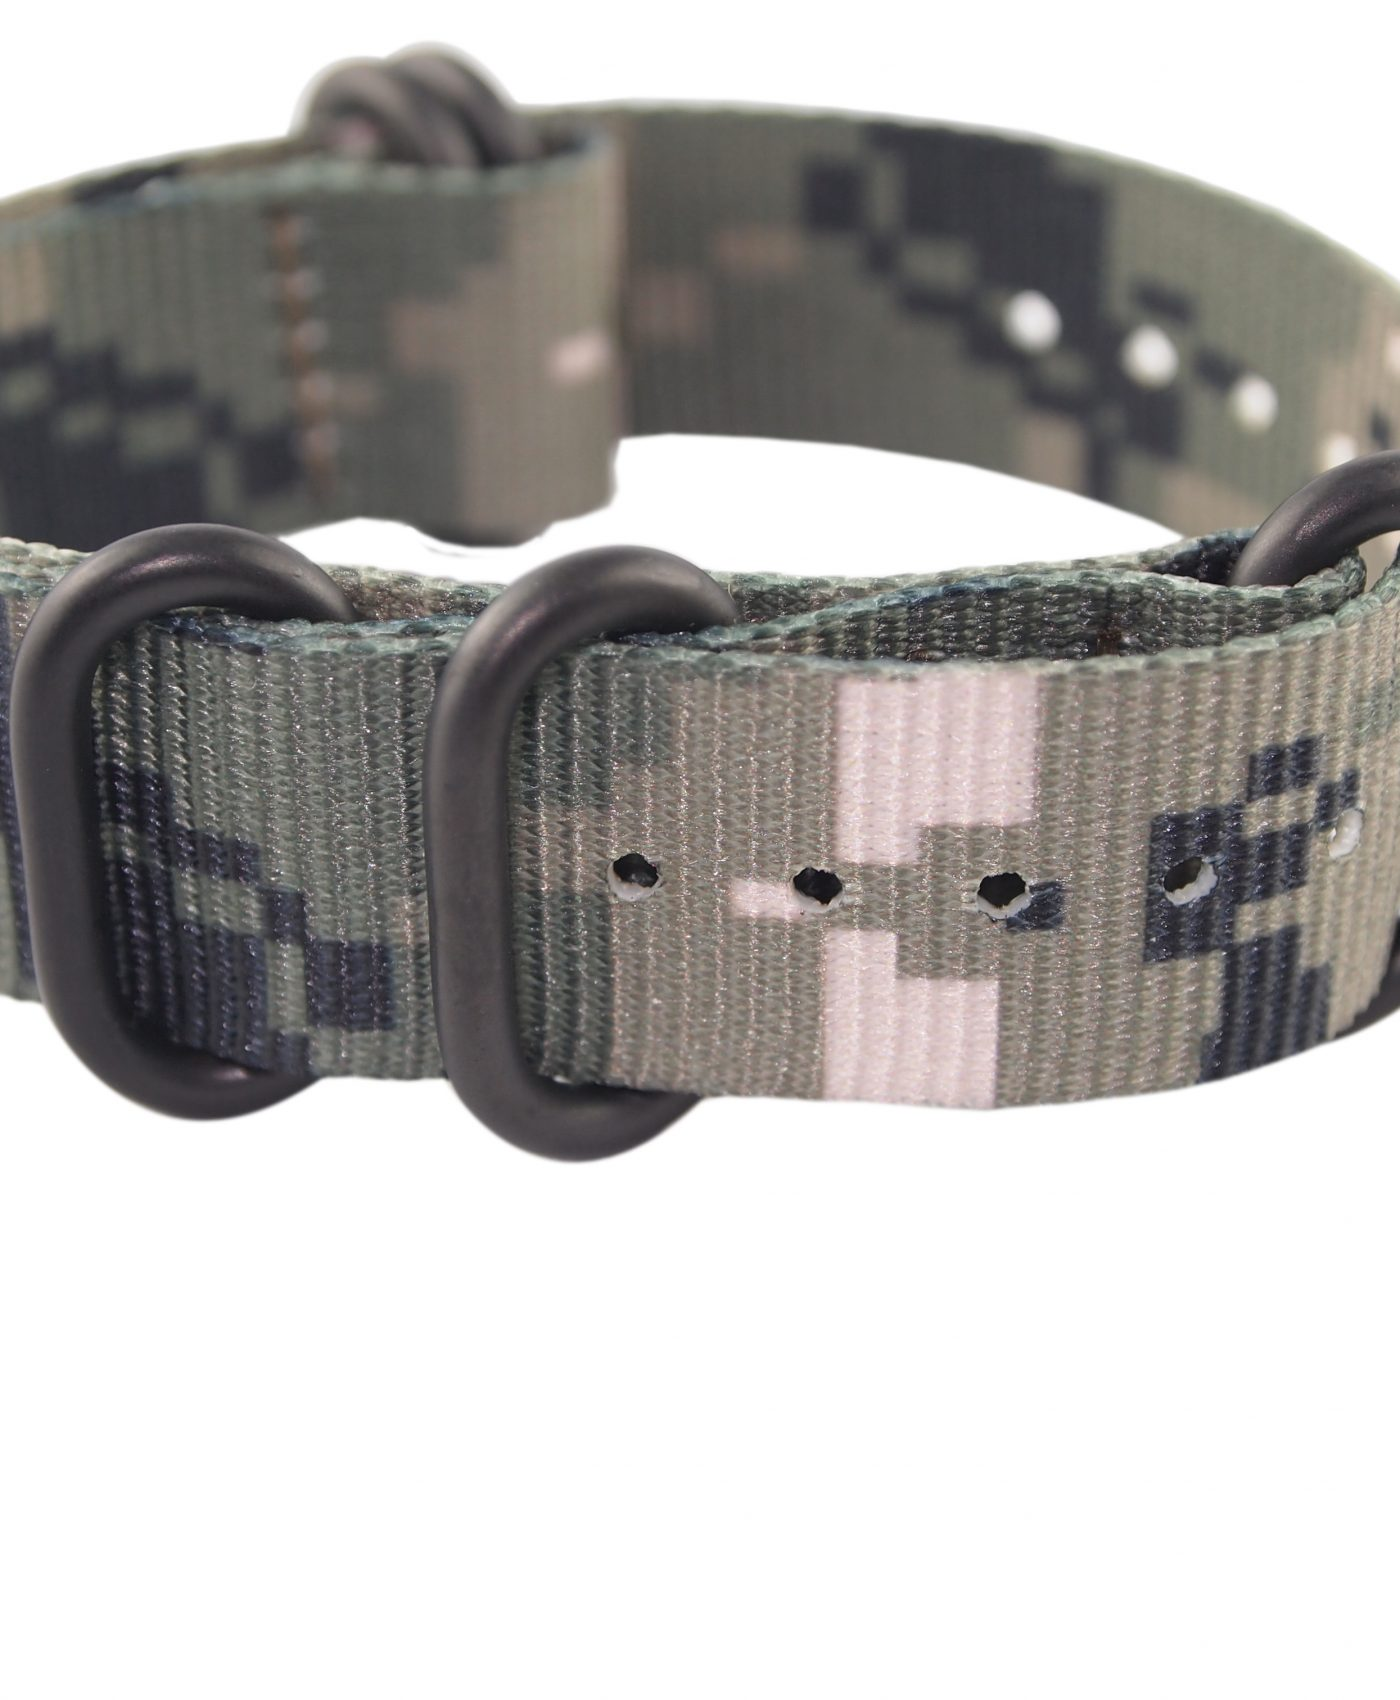 ZULU-Strap-Camo-6-PVD-Steel-by-WatchBandits